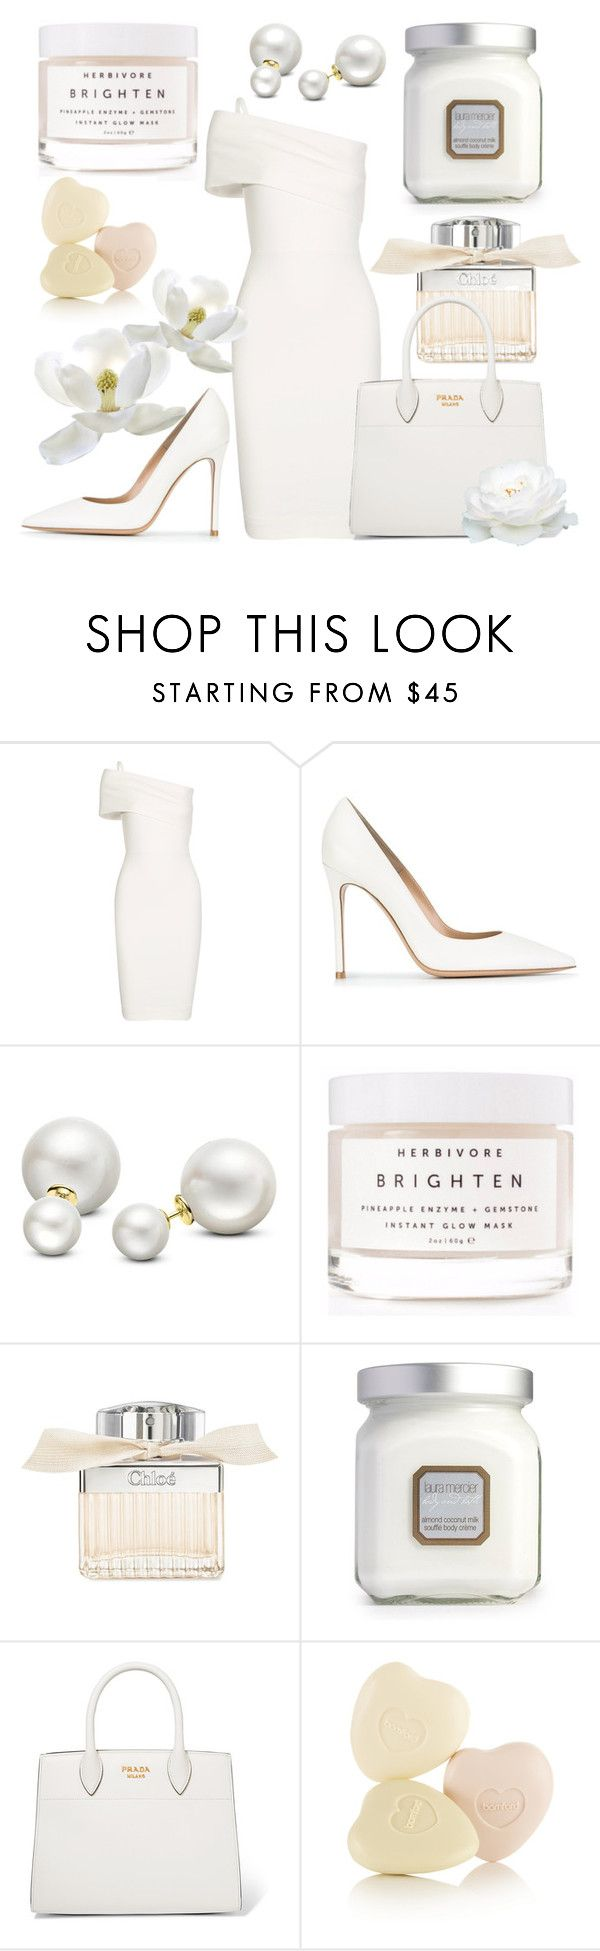 """Colour white 01"" by slavulienka on Polyvore featuring Michelle Mason, Gianvito Rossi, Allurez, Herbivore, Chloé, Laura Mercier and Prada"